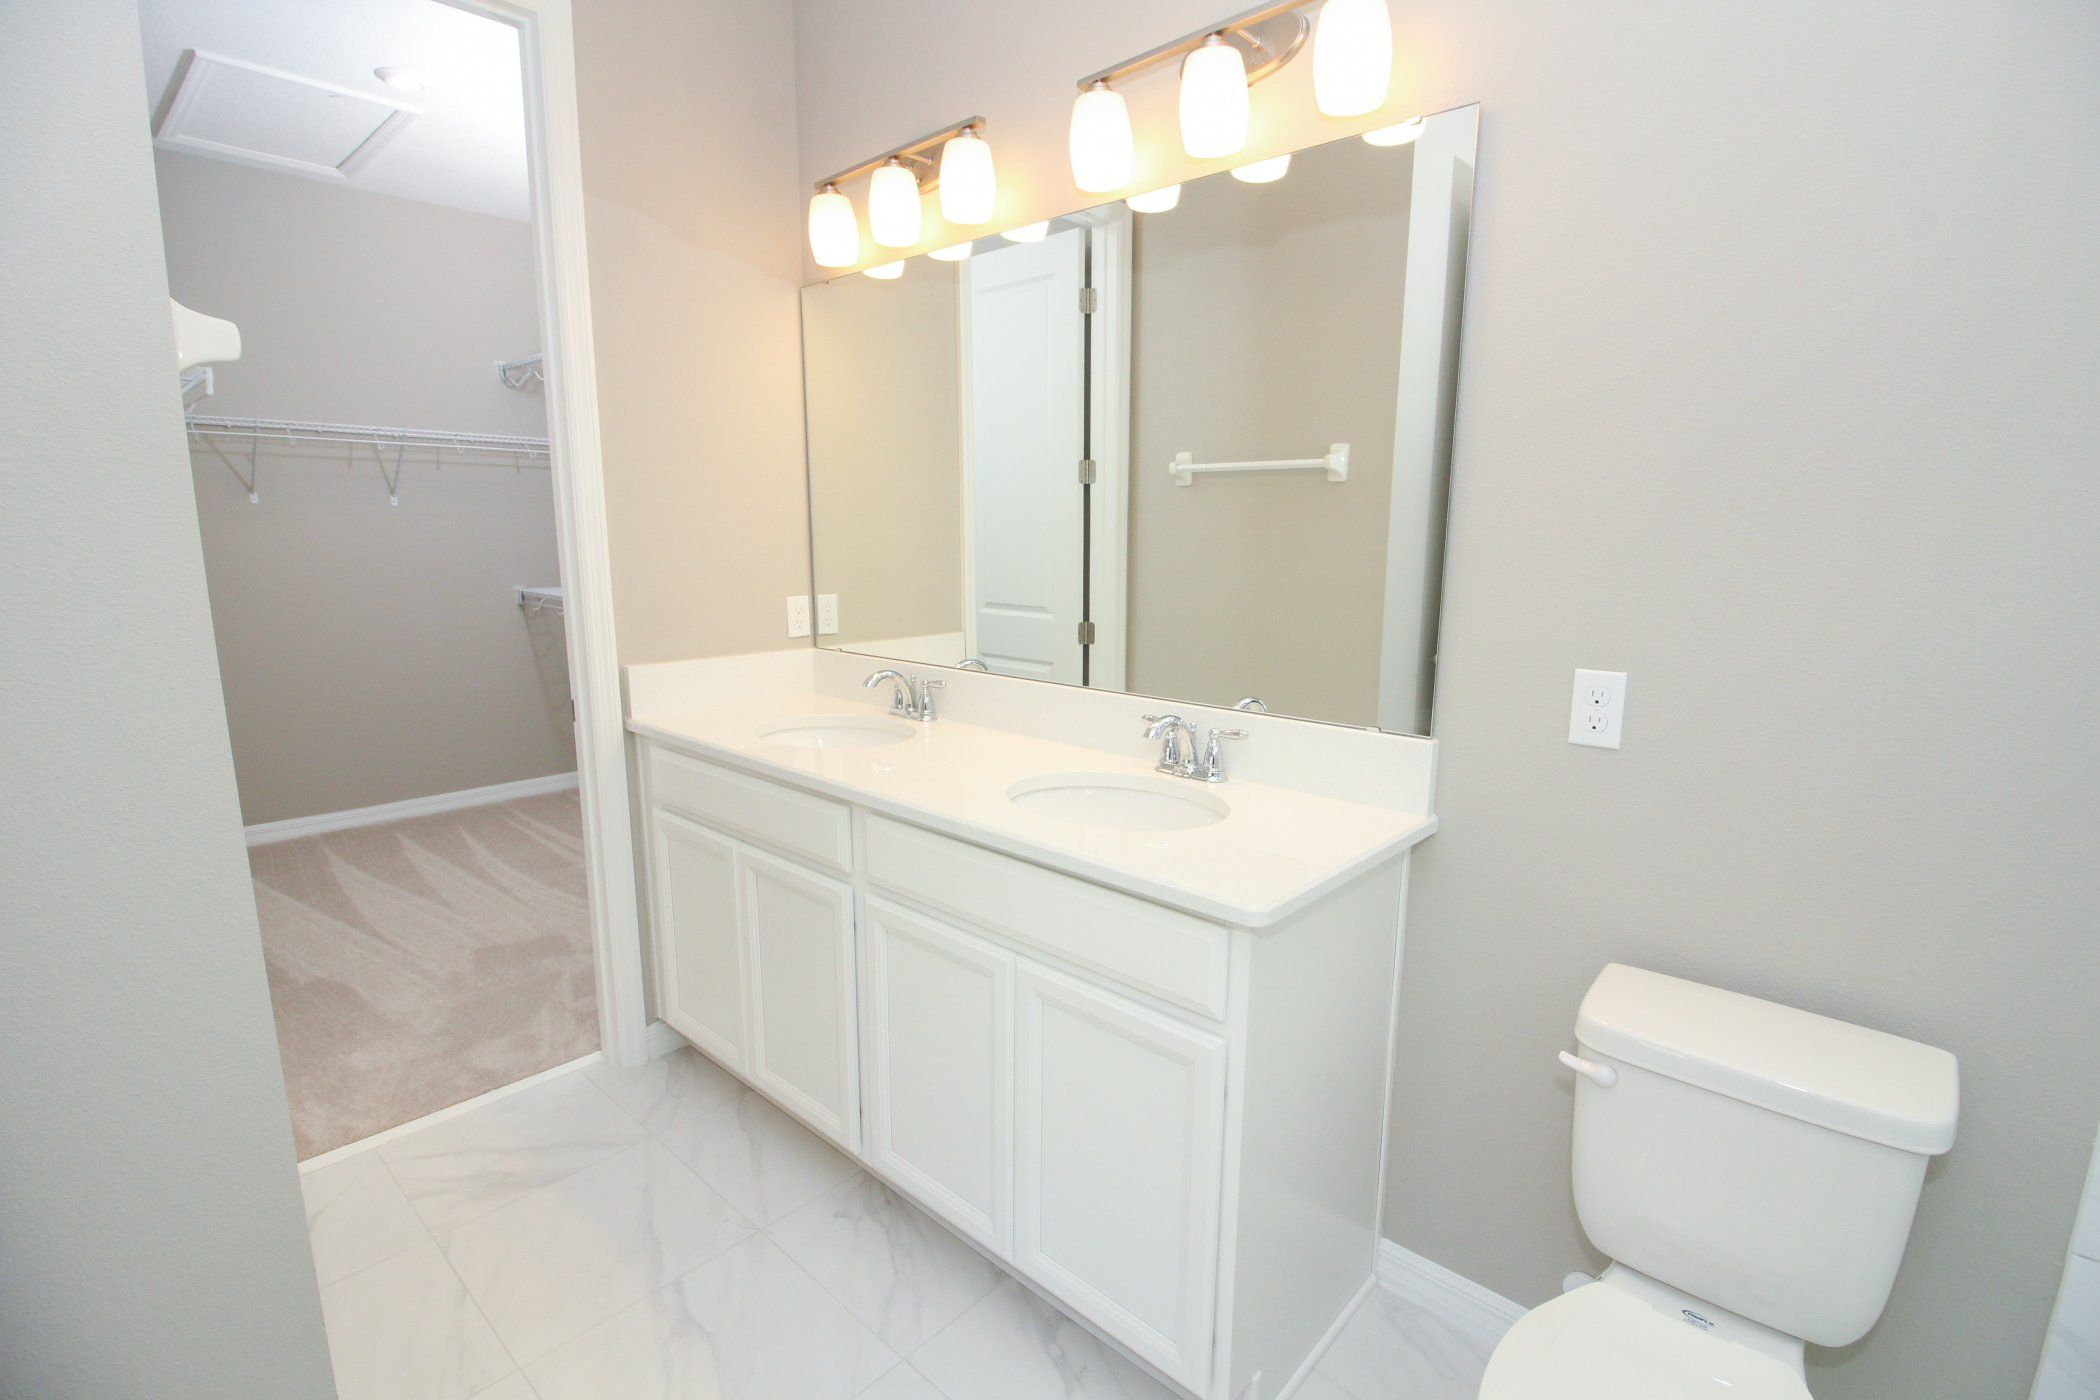 Bathroom featured in the Cayman By Taylor Morrison in Orlando, FL